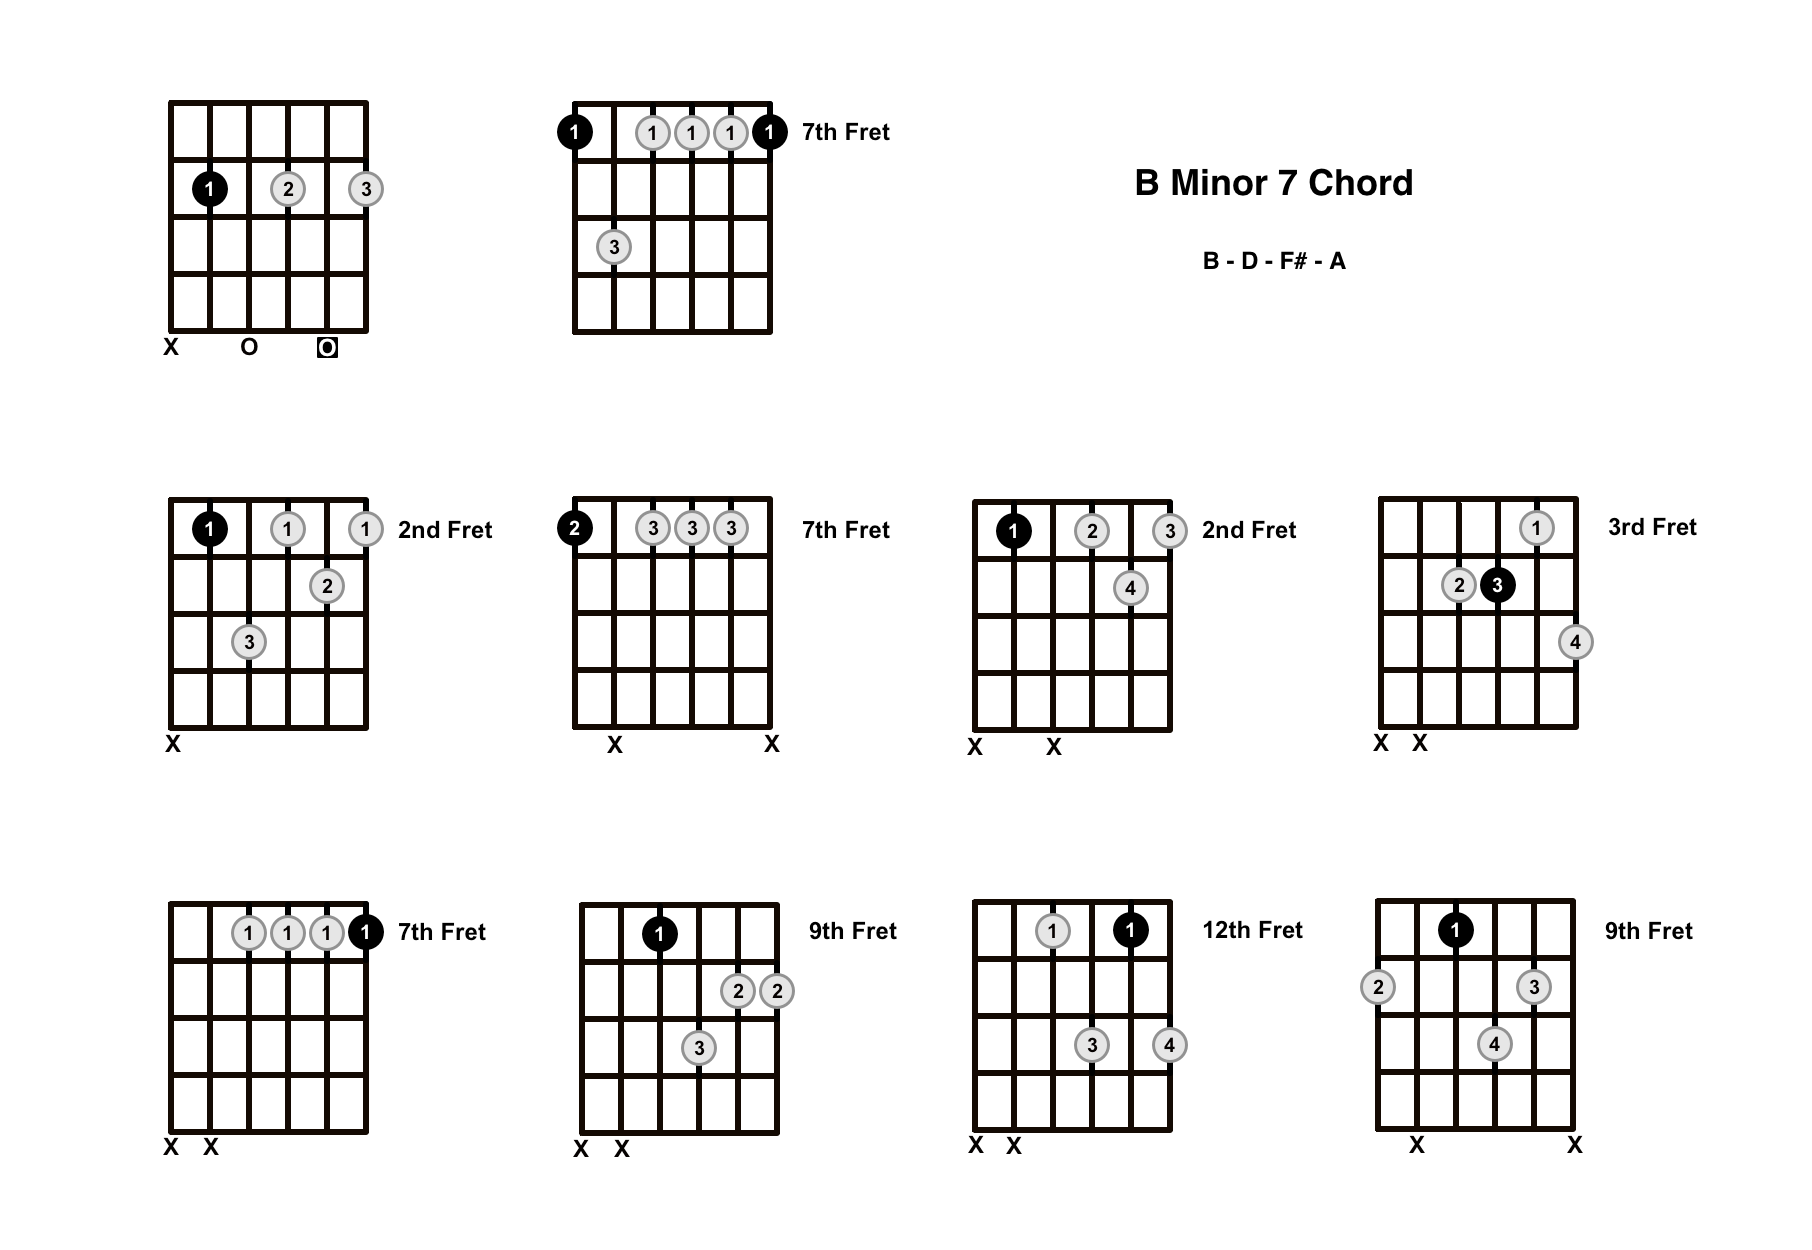 Bm7 Chord on the Guitar (B Minor 7) – Diagrams, Finger Positions, Theory